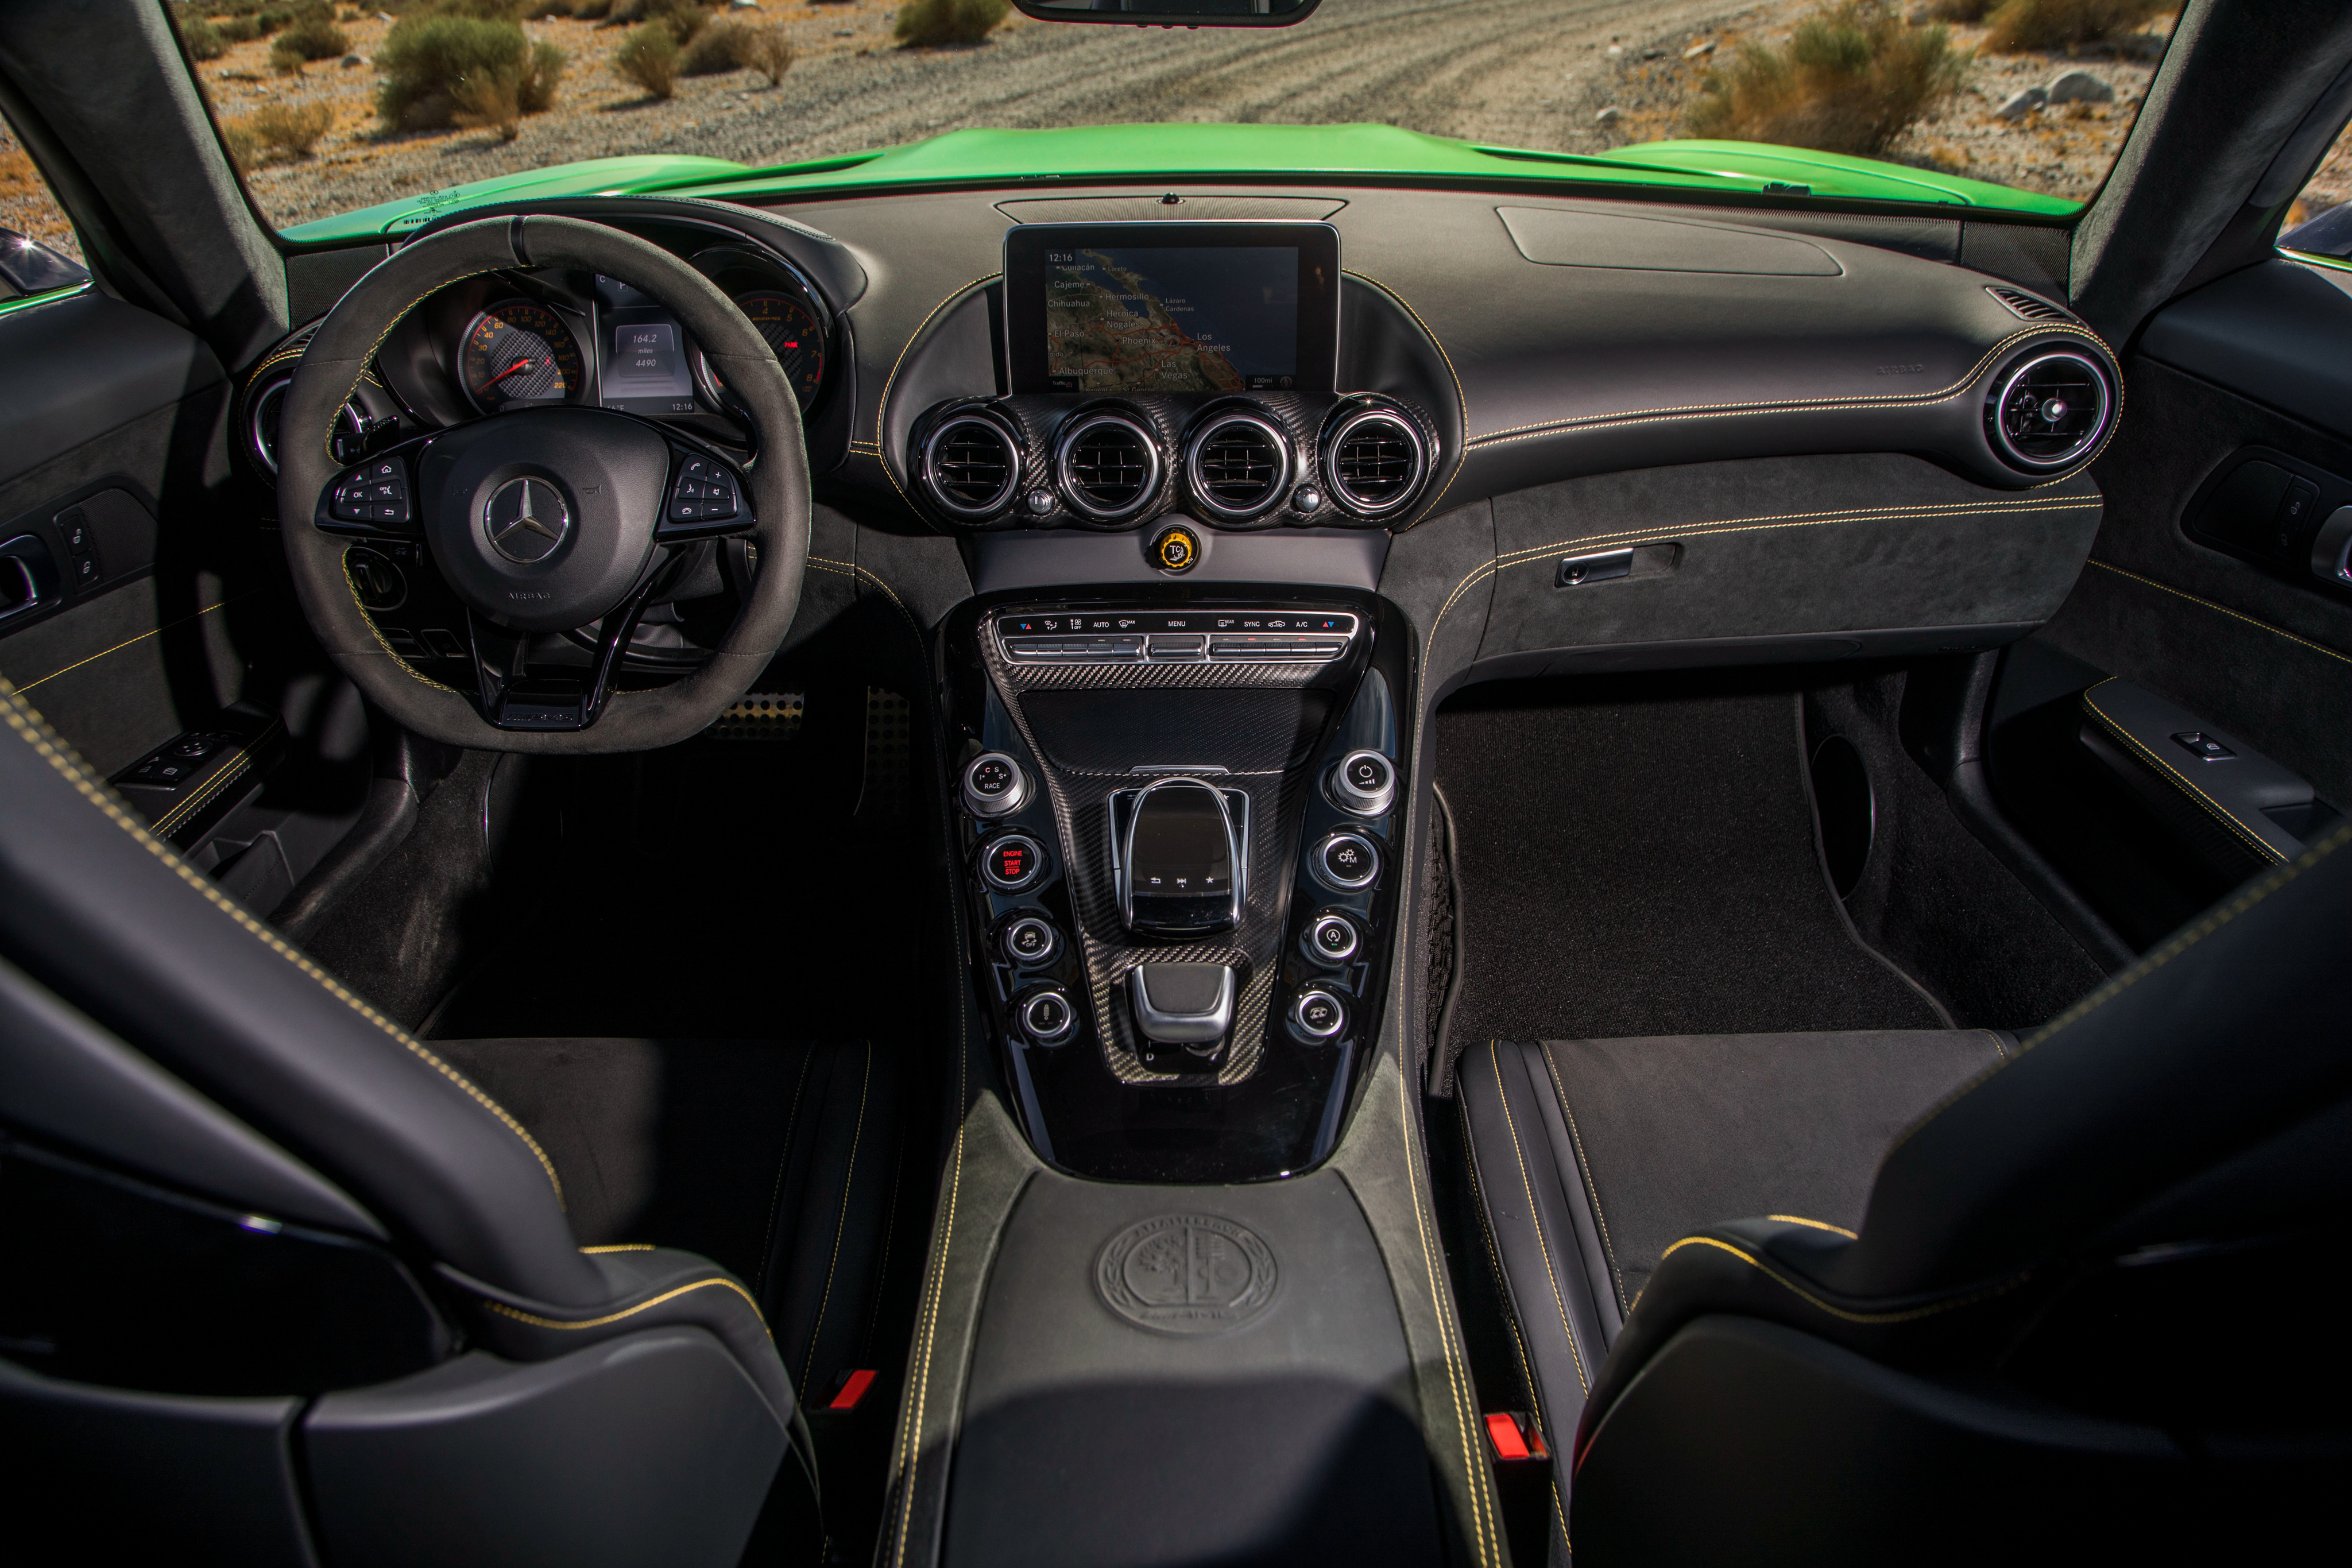 Mercedes AMG GTR Interior, HD Cars, 4k Wallpapers, Images ...